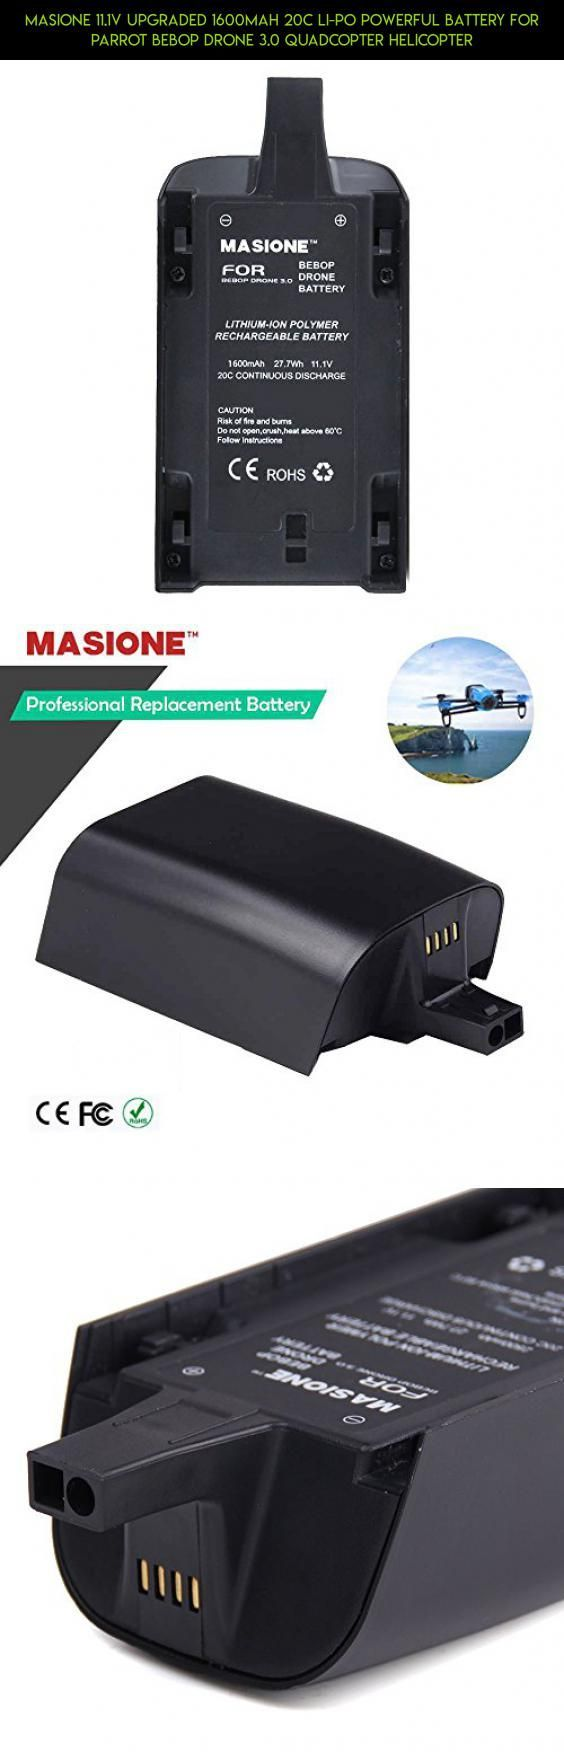 Masione 11.1V Upgraded 1600mah 20C Li-Po Powerful Battery for Parrot Bebop Drone 3.0 Quadcopter Helicopter #parrot #quad #kit #technology #shopping #plans #gadgets #helicopter #tech #fpv #camera #drone #racing #parts #products